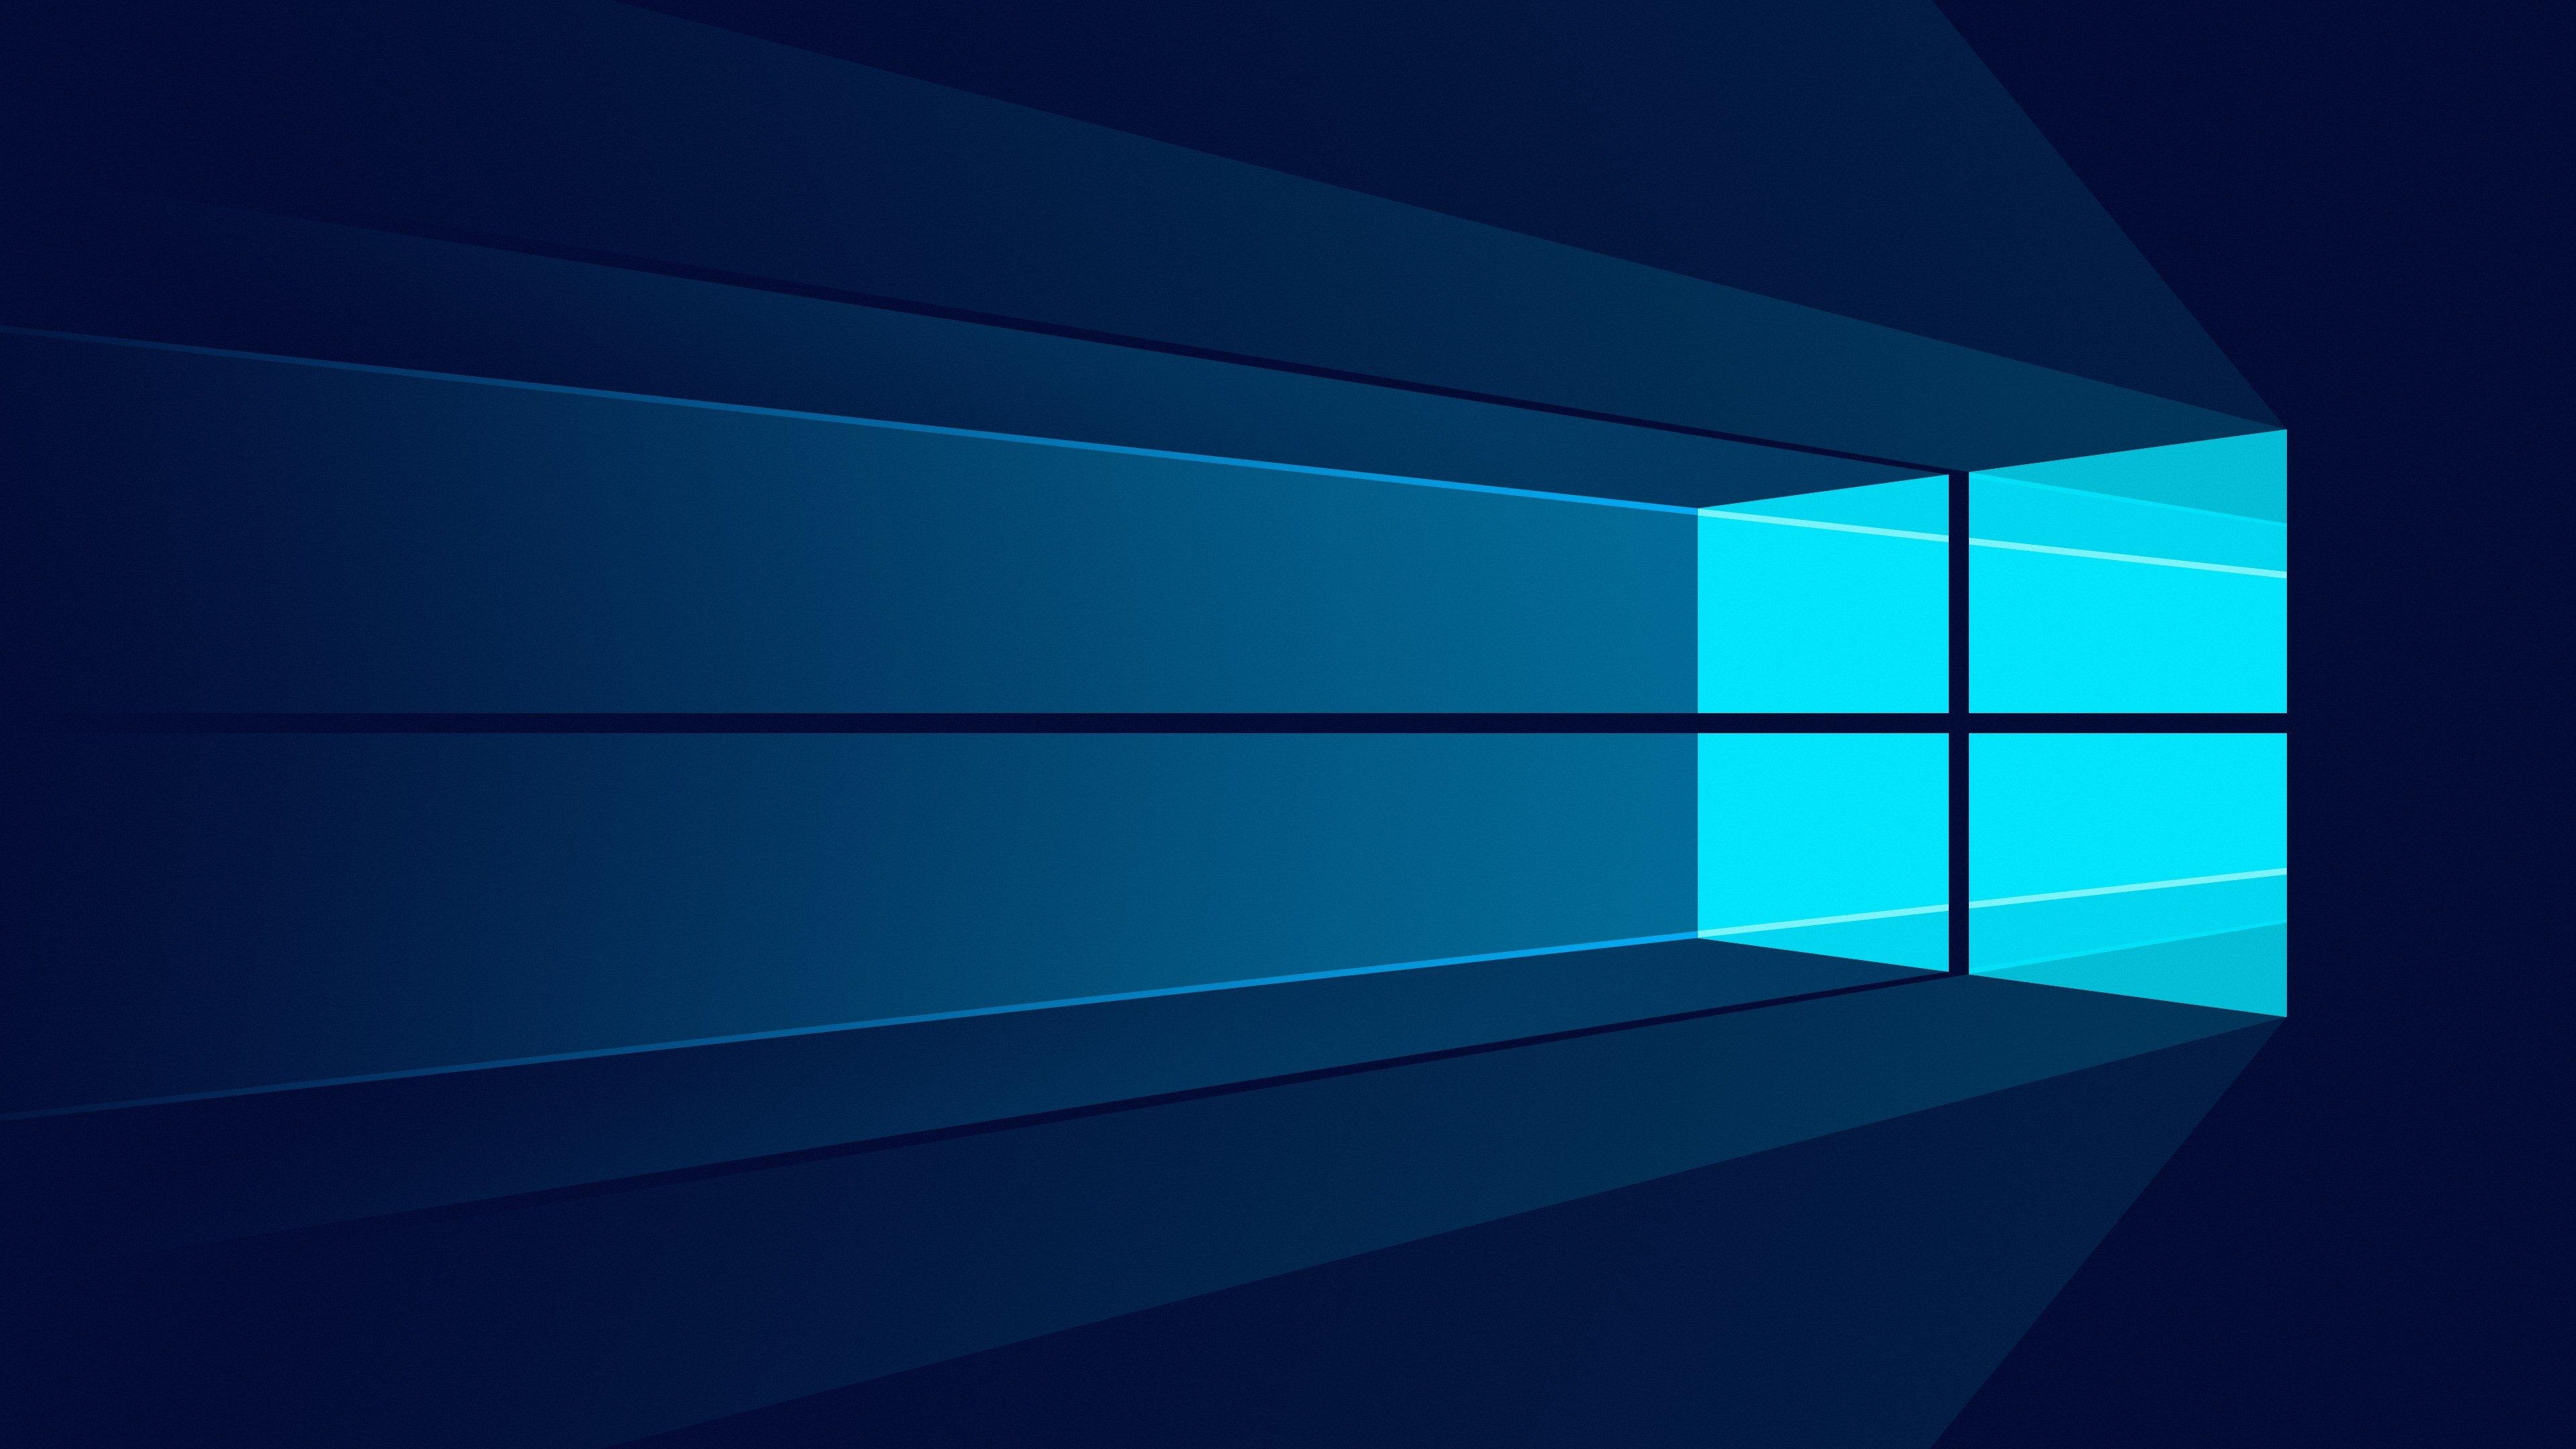 3840x2160 Windows 10 4k Amazing Wallpaper Hd For Desktop Fondo Windows Fondos De Pantalla Verde Windows 10